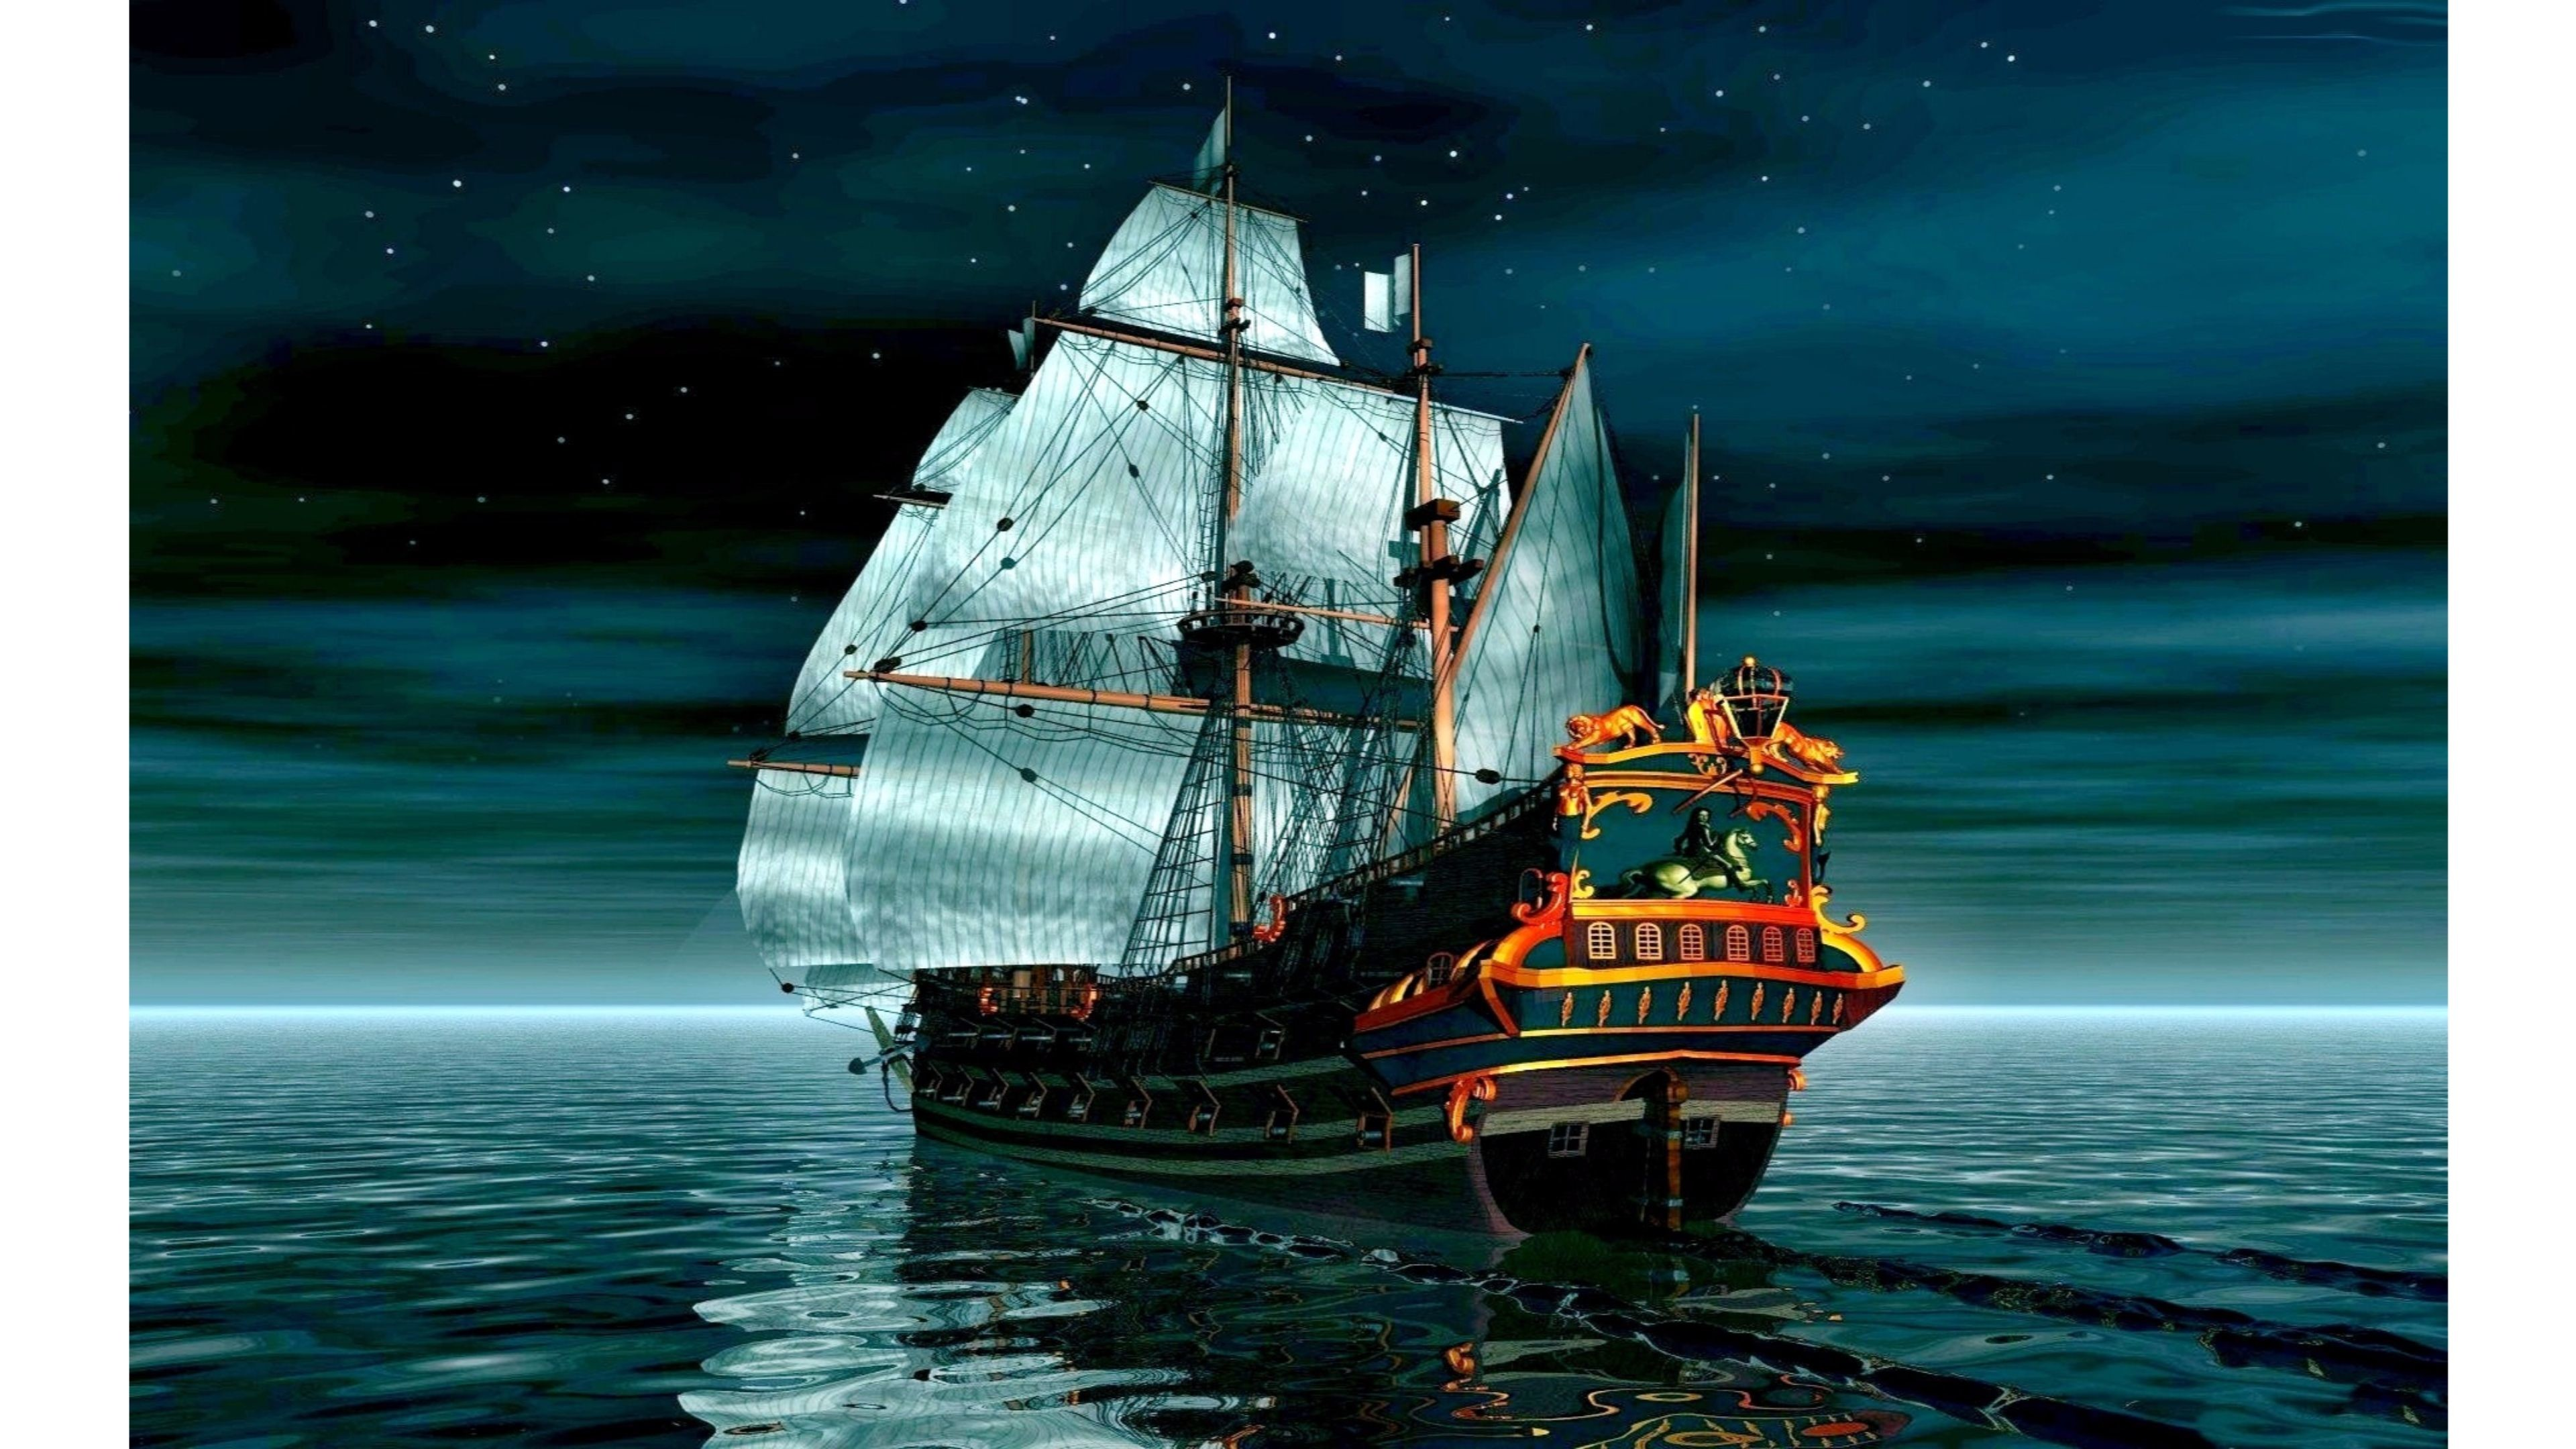 Pirate Ship Wallpaper (82+ images)